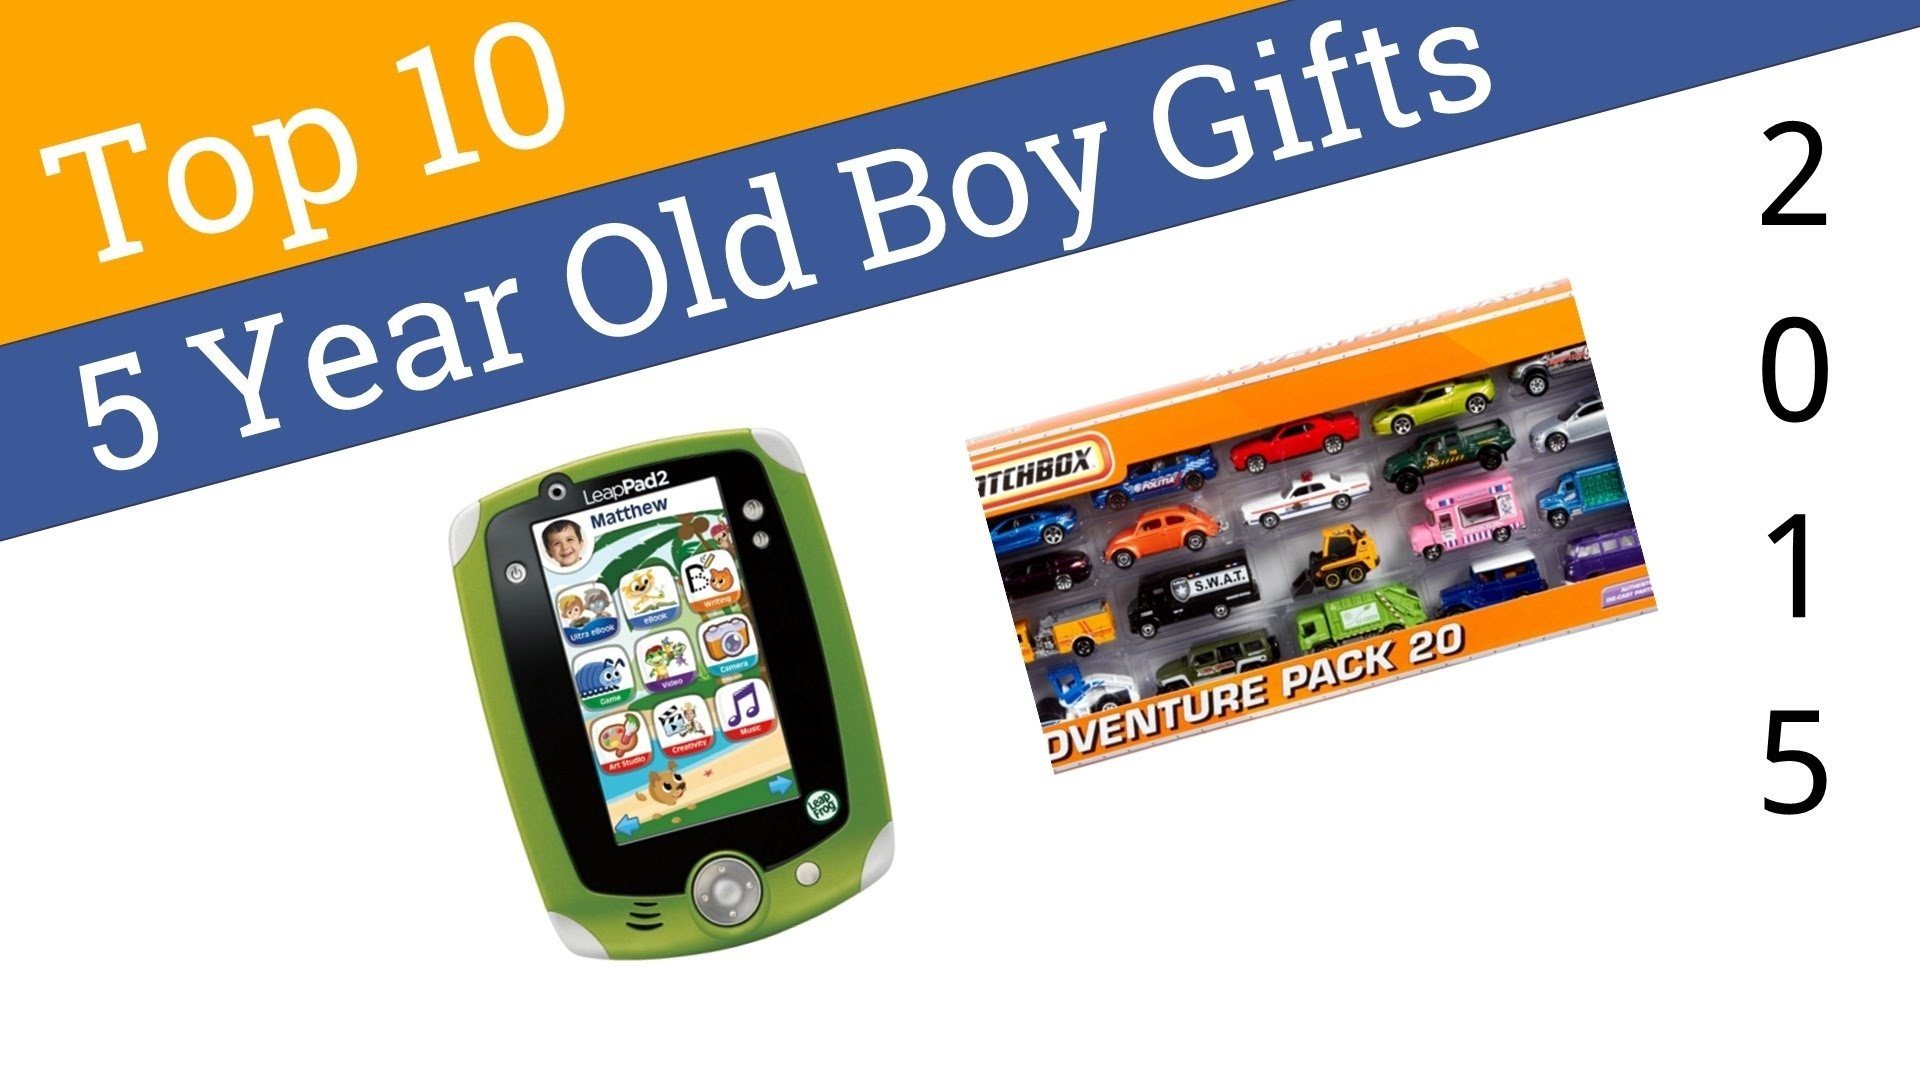 10 best 5 year old boy gifts 2015 - youtube